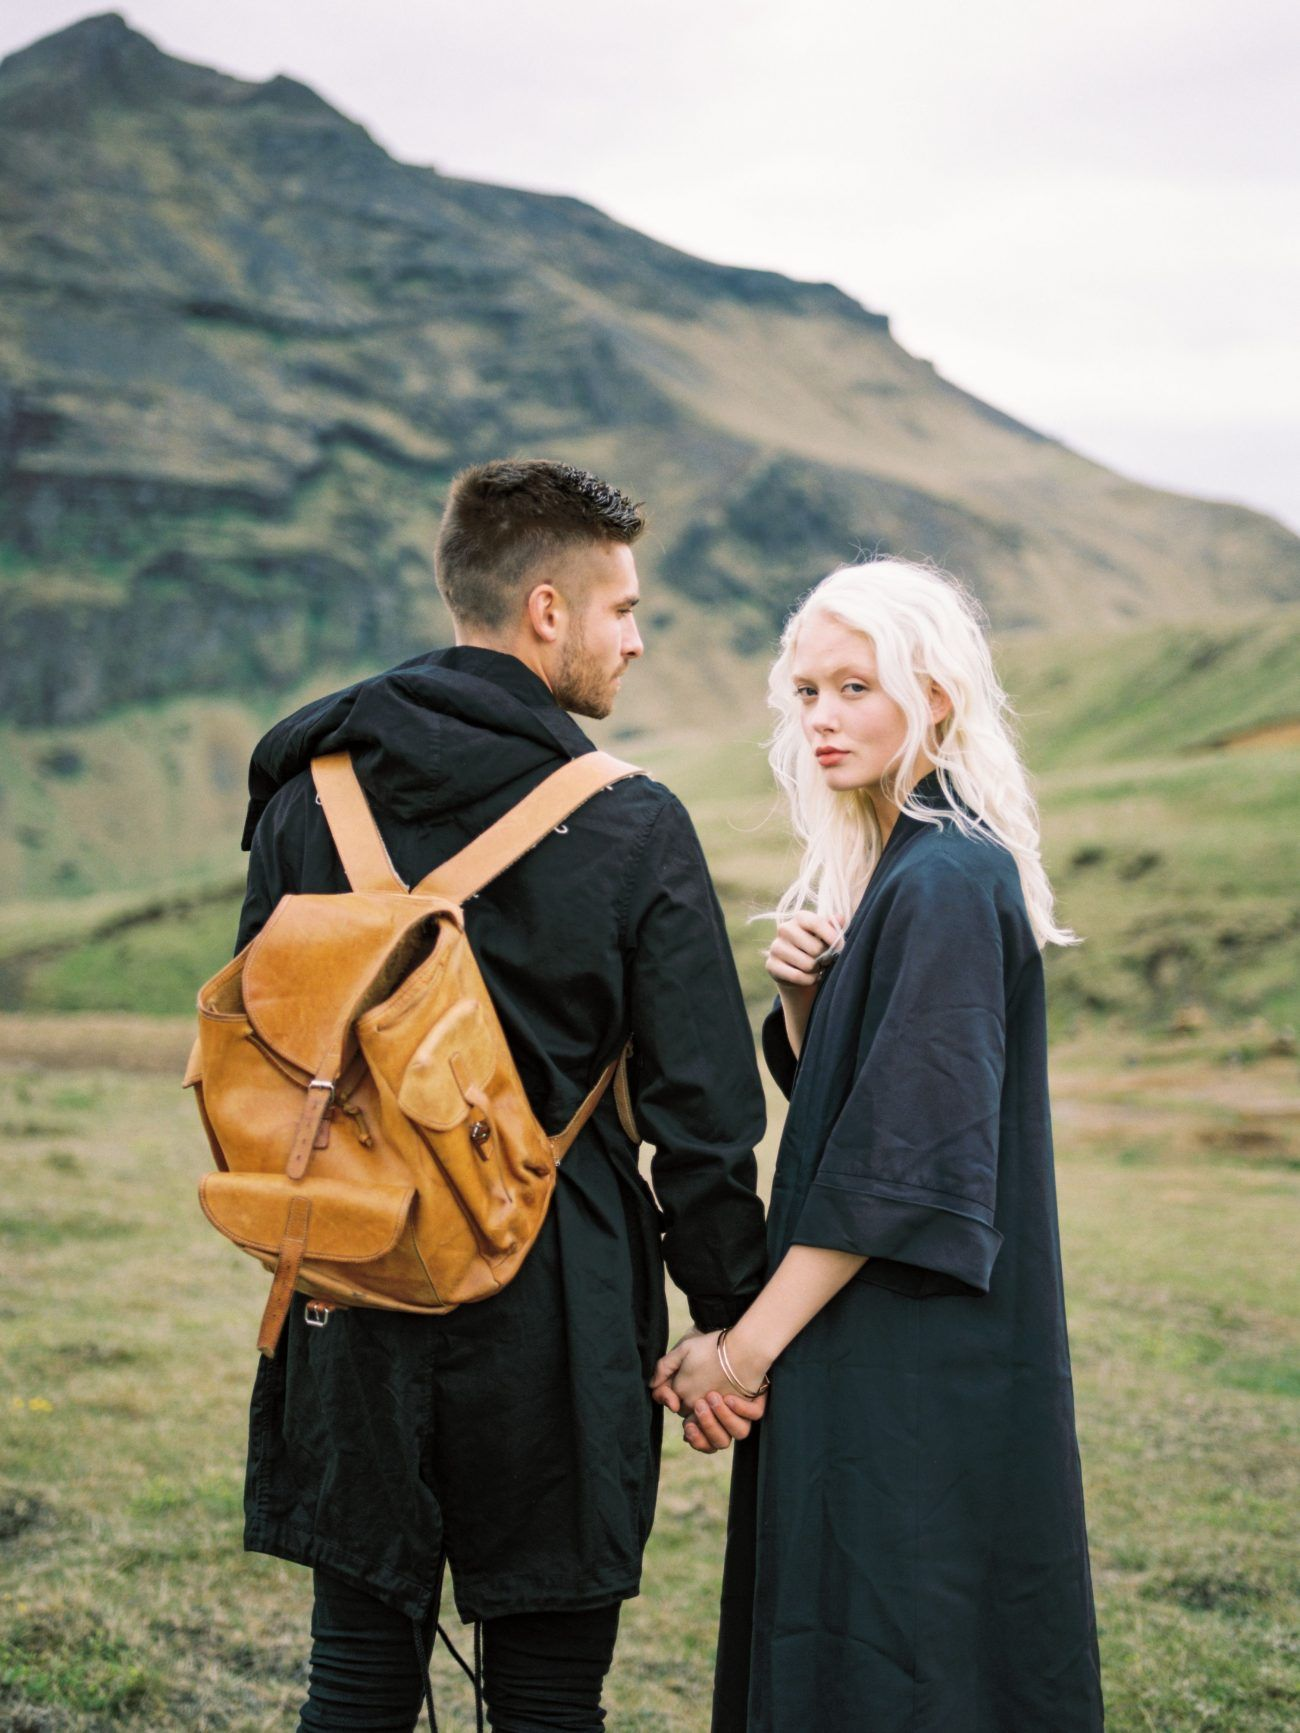 Outdoor Engagement Session in Iceland